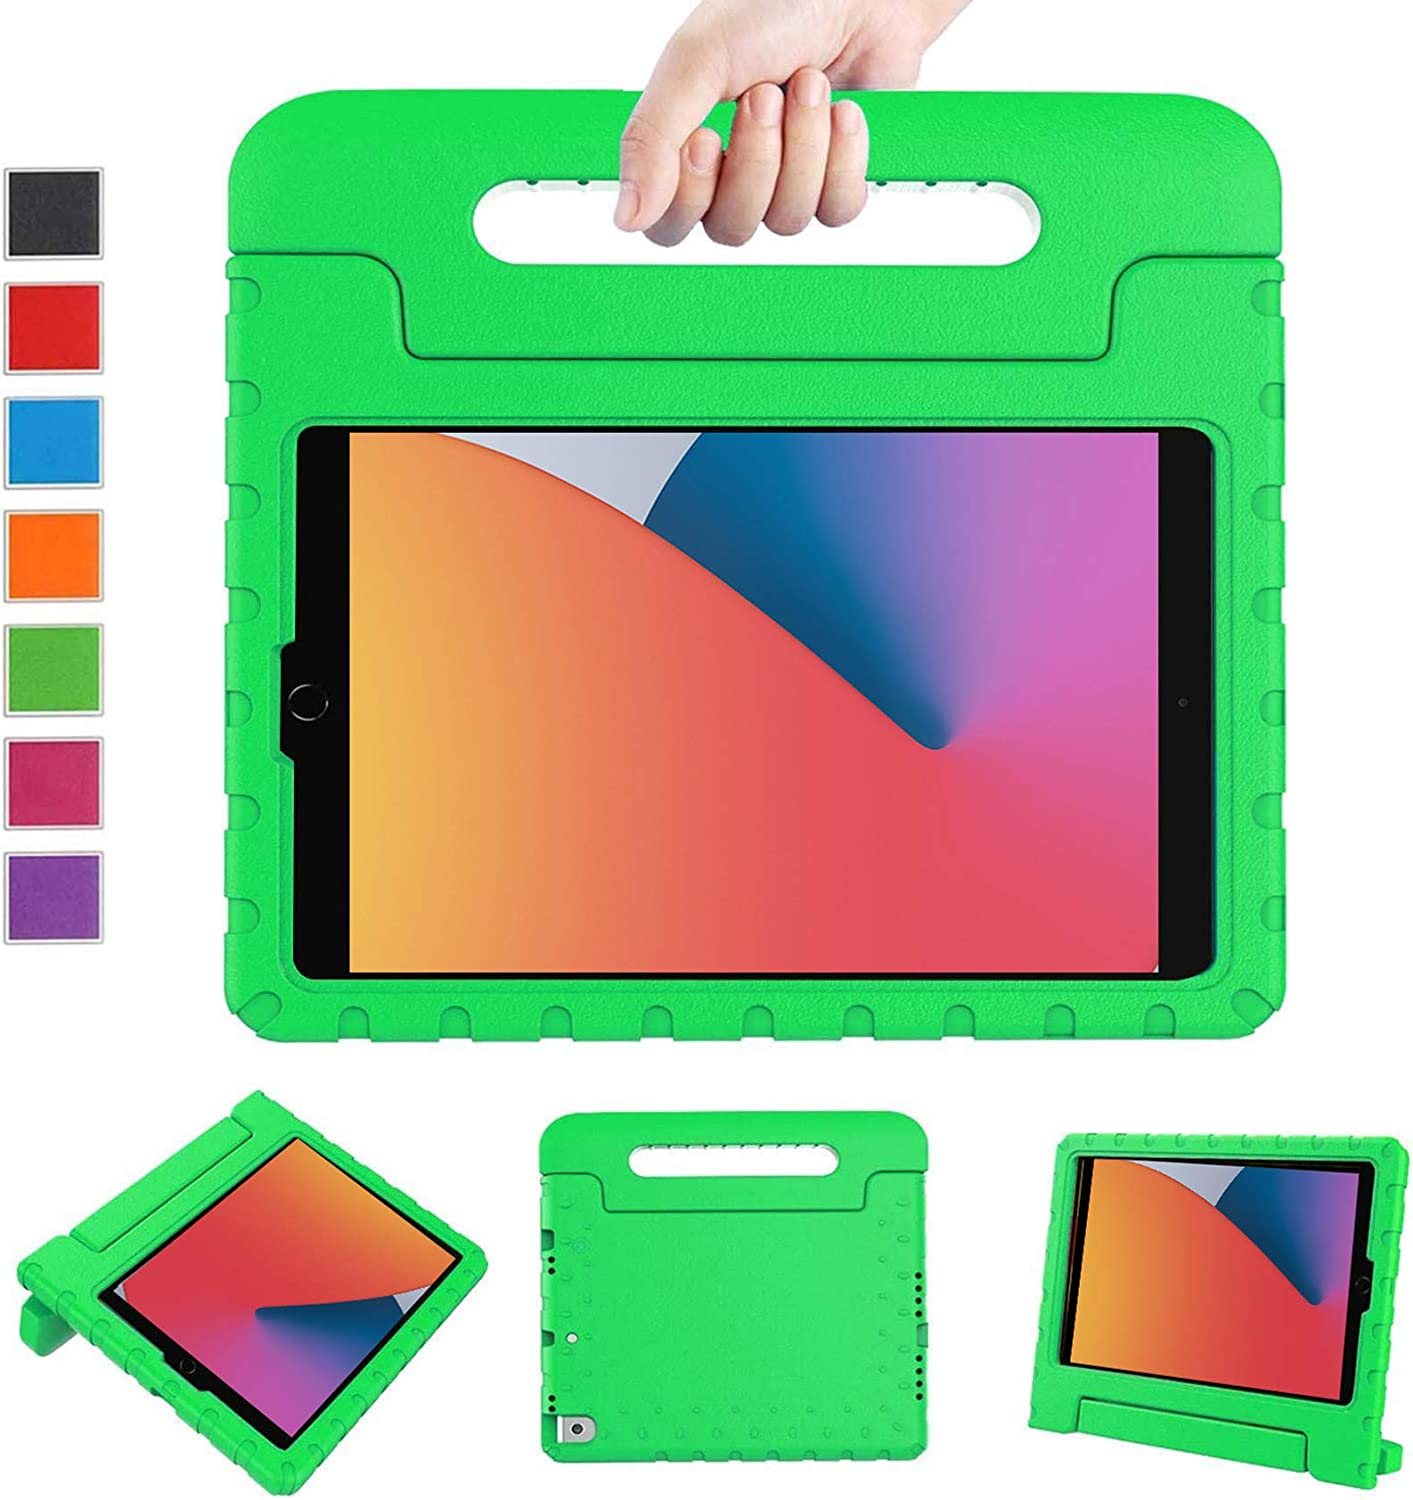 LTROP New iPad 9th/8th/7th Generation Case, iPad 10.2 Case 2021,iPad Case 10.2-inch Shockproof Light Weight Handle Stand Kids Case for Apple iPad 10.2 2021(9th Gen)/2020(8th Gen)/2019 (7th Gen),Green